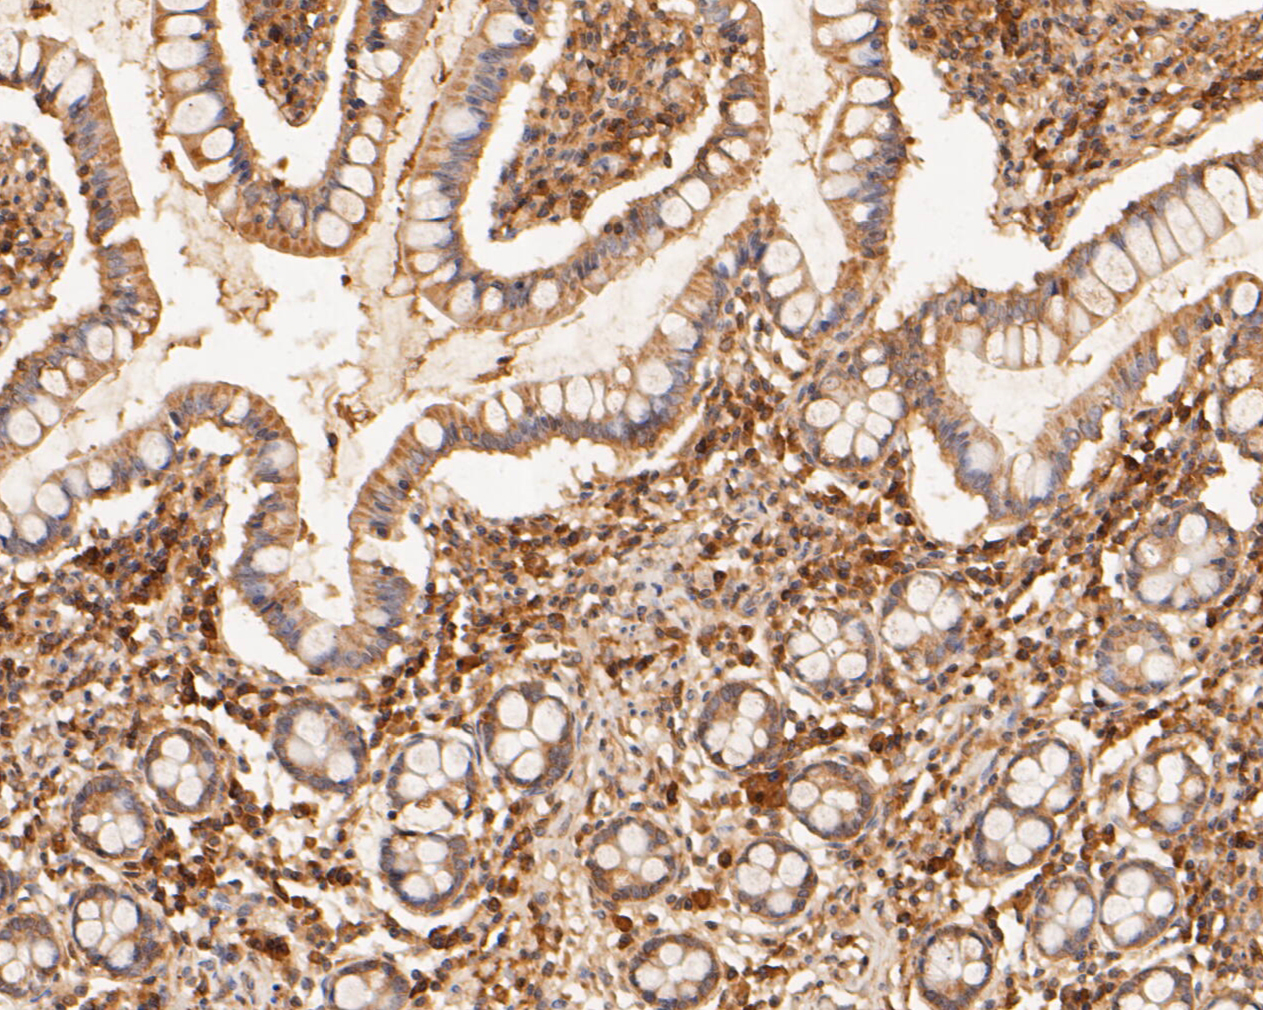 Immunohistochemical analysis of paraffin-embedded human small intestine tissue using anti-MDM2 antibody. The section was pre-treated using heat mediated antigen retrieval with sodium citrate buffer (pH 6.0) for 20 minutes. The tissues were blocked in 5% BSA for 30 minutes at room temperature, washed with ddH2O and PBS, and then probed with the primary antibody (ER1902-14, 1/1,000) for 30 minutes at room temperature. The detection was performed using an HRP conjugated compact polymer system. DAB was used as the chromogen. Tissues were counterstained with hematoxylin and mounted with DPX.